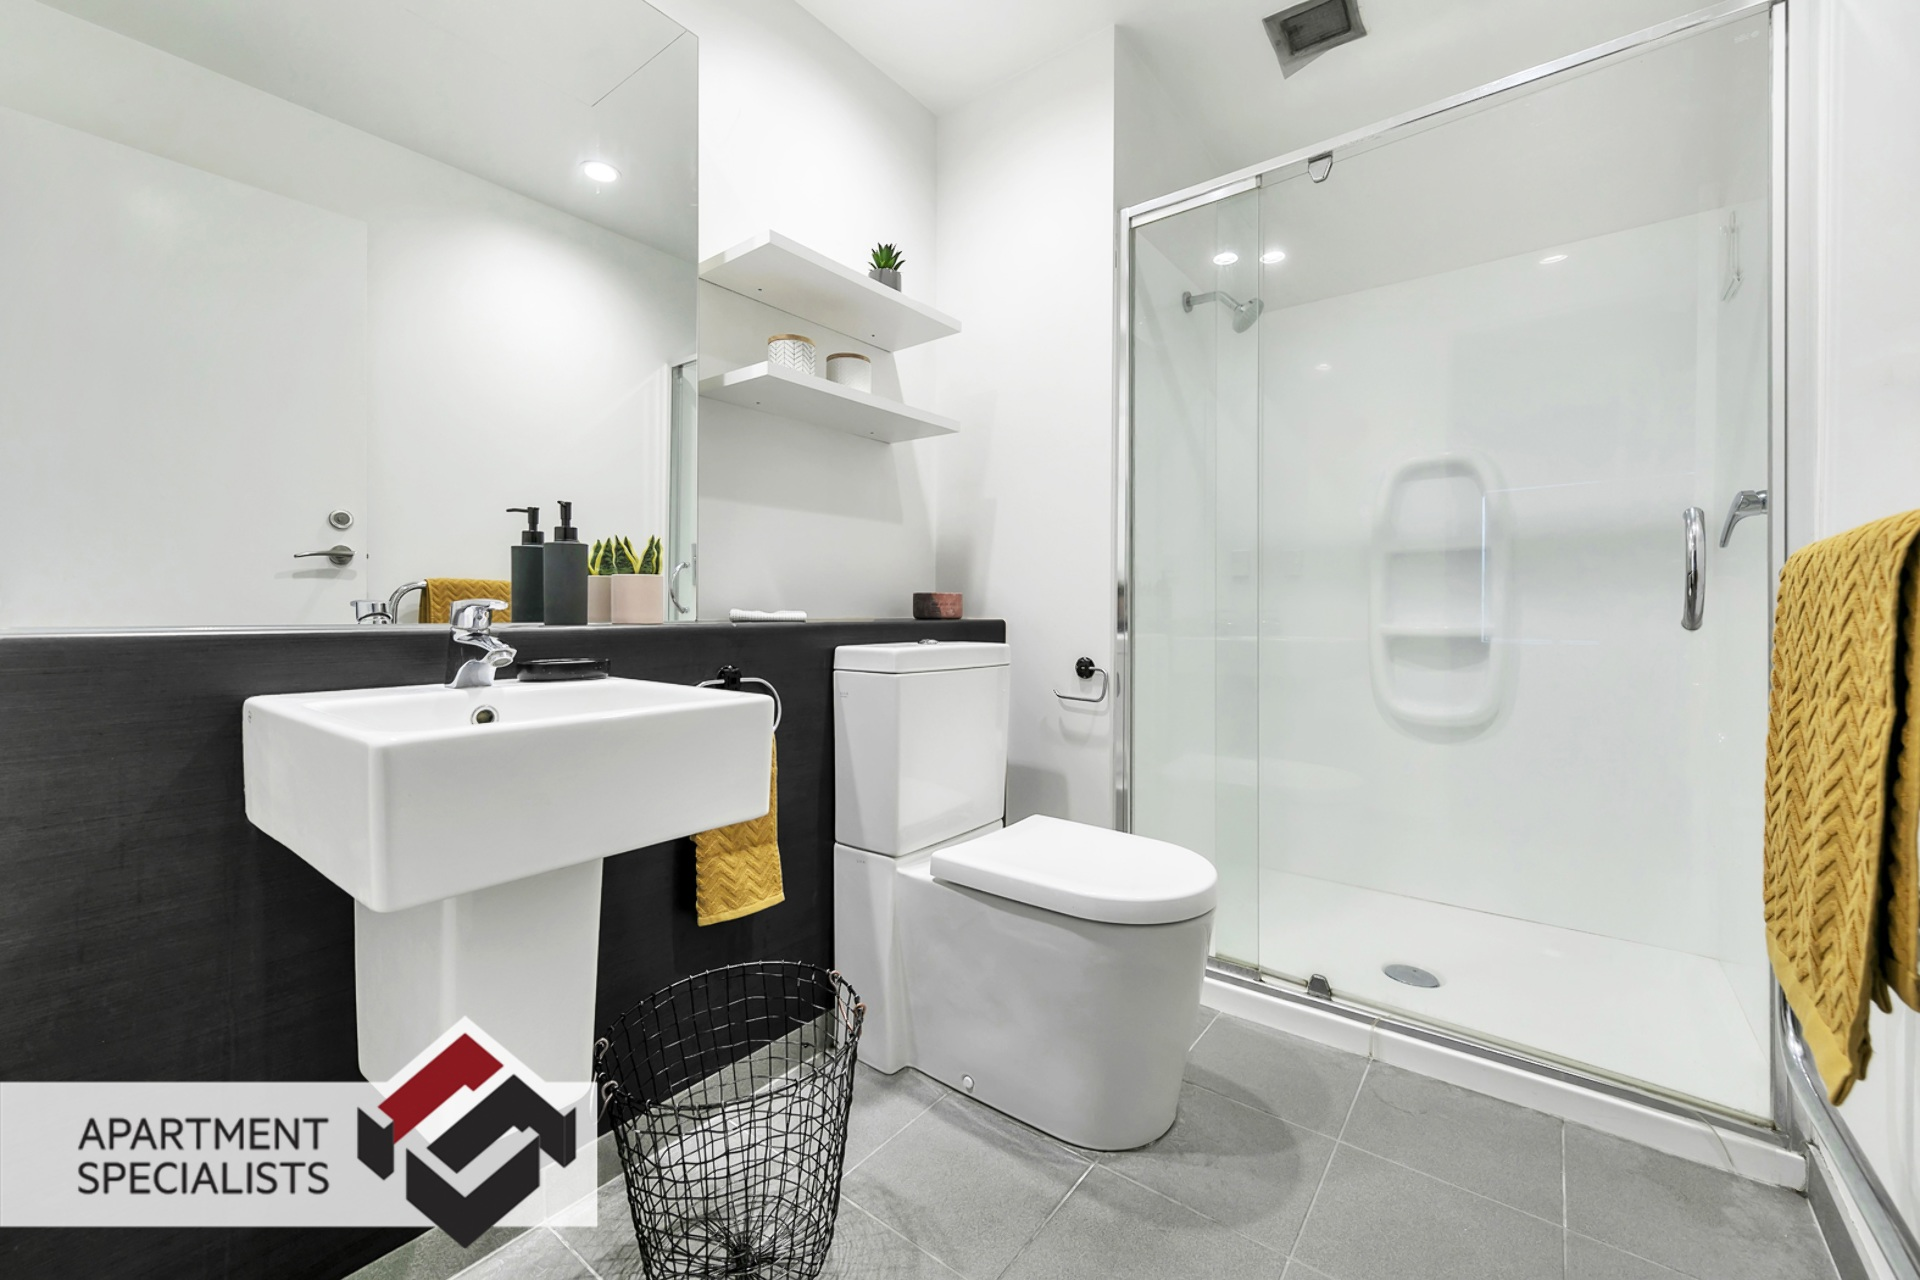 7 | 145 Symonds Street, City Centre | Apartment Specialists